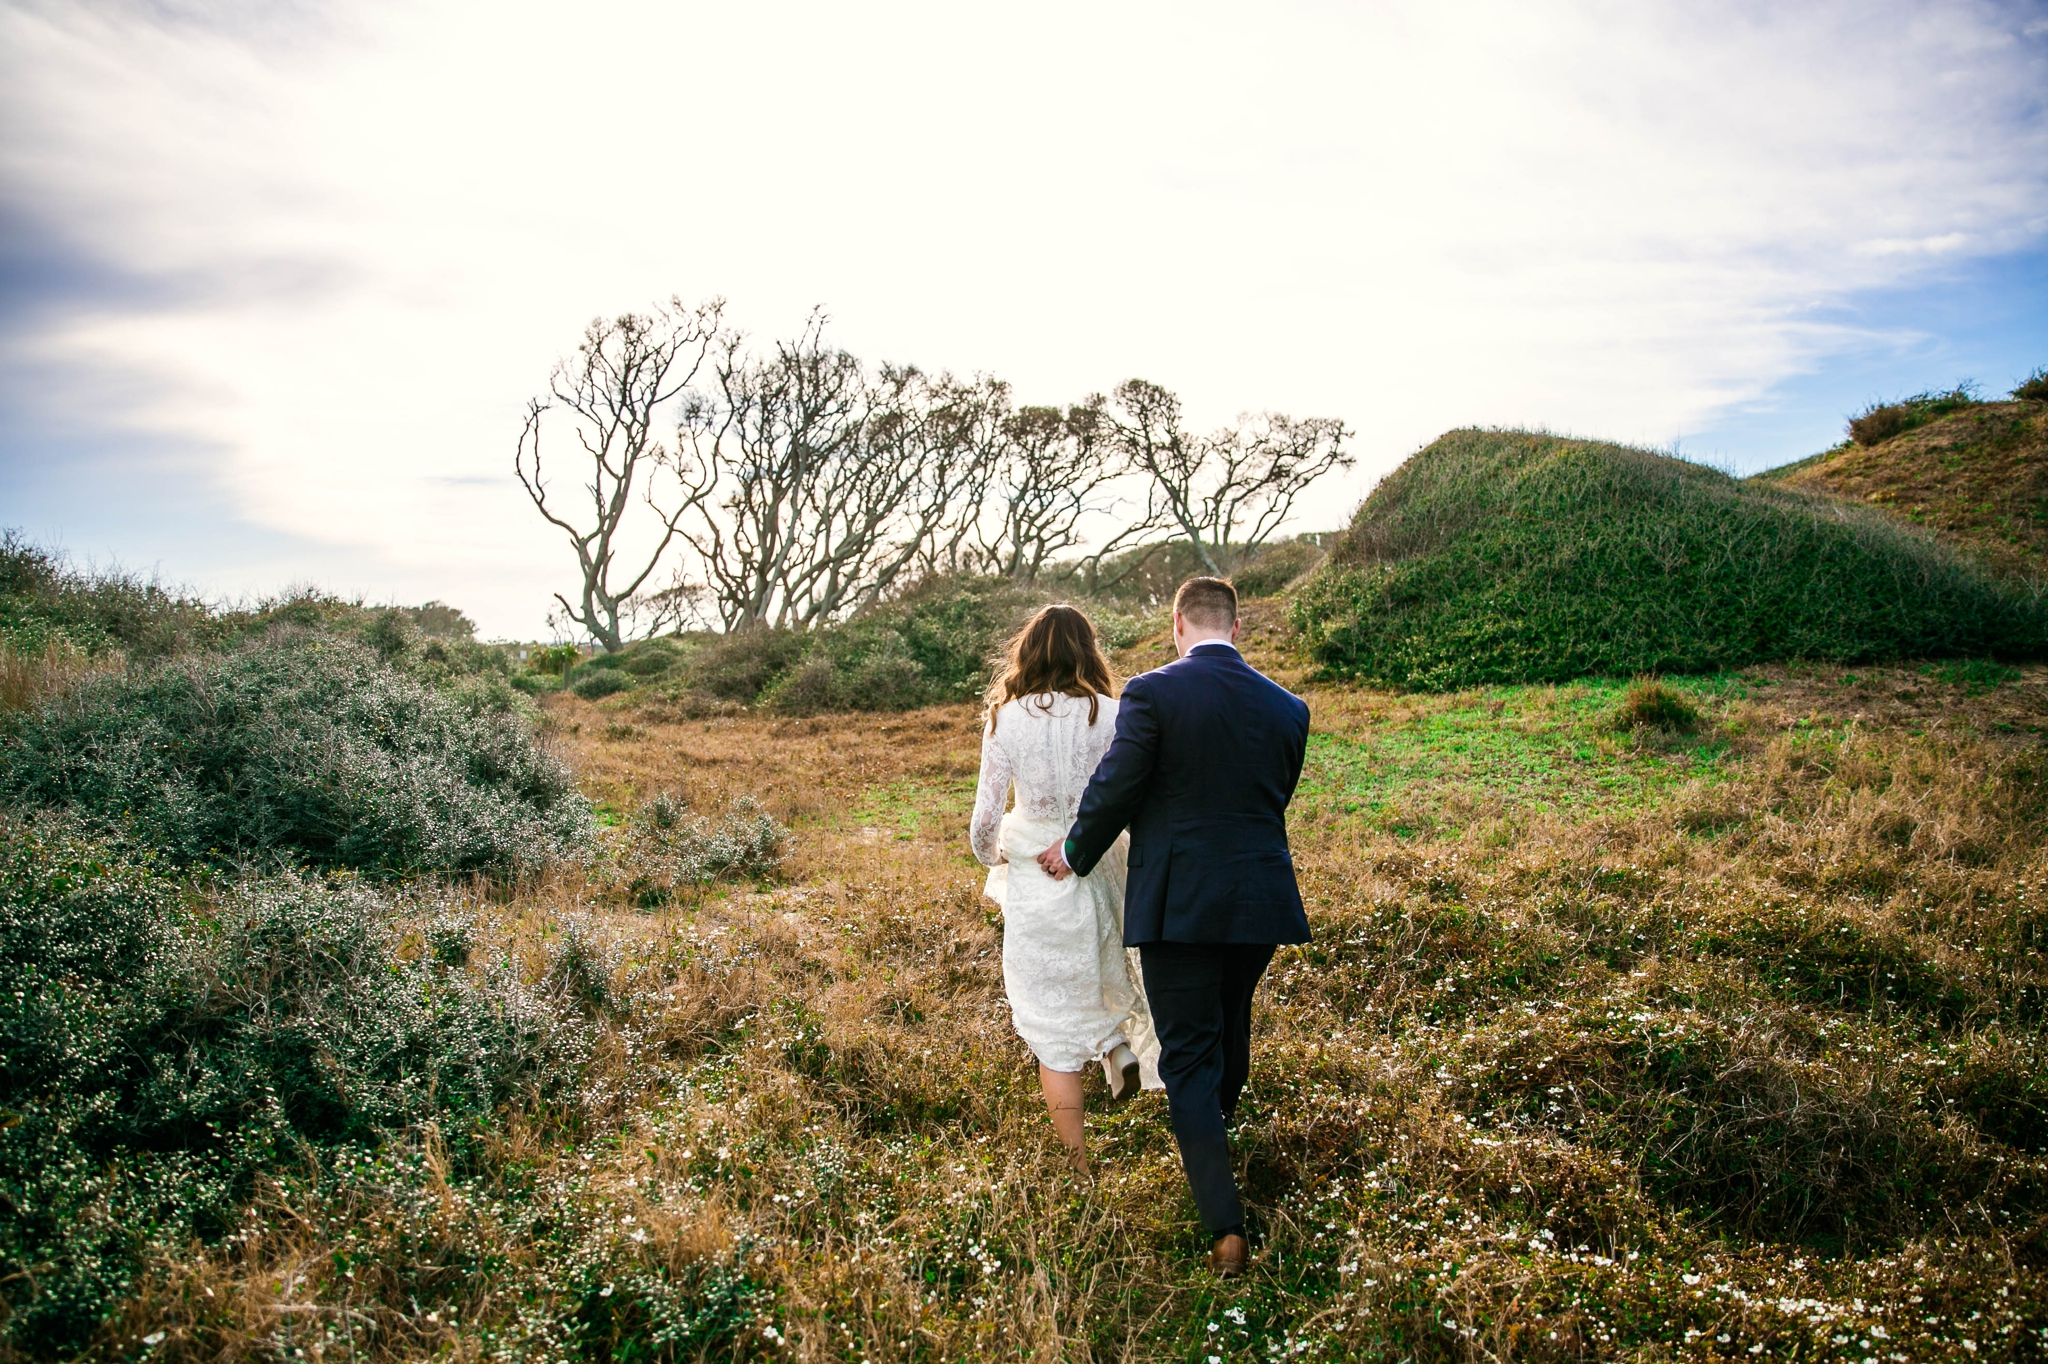 Groom holding brides dress while walking in Lush Green Hills - Beach Elopement Photography - wedding dress by asos with purple and pink flowers and navy suit - oahu hawaii wedding photographer